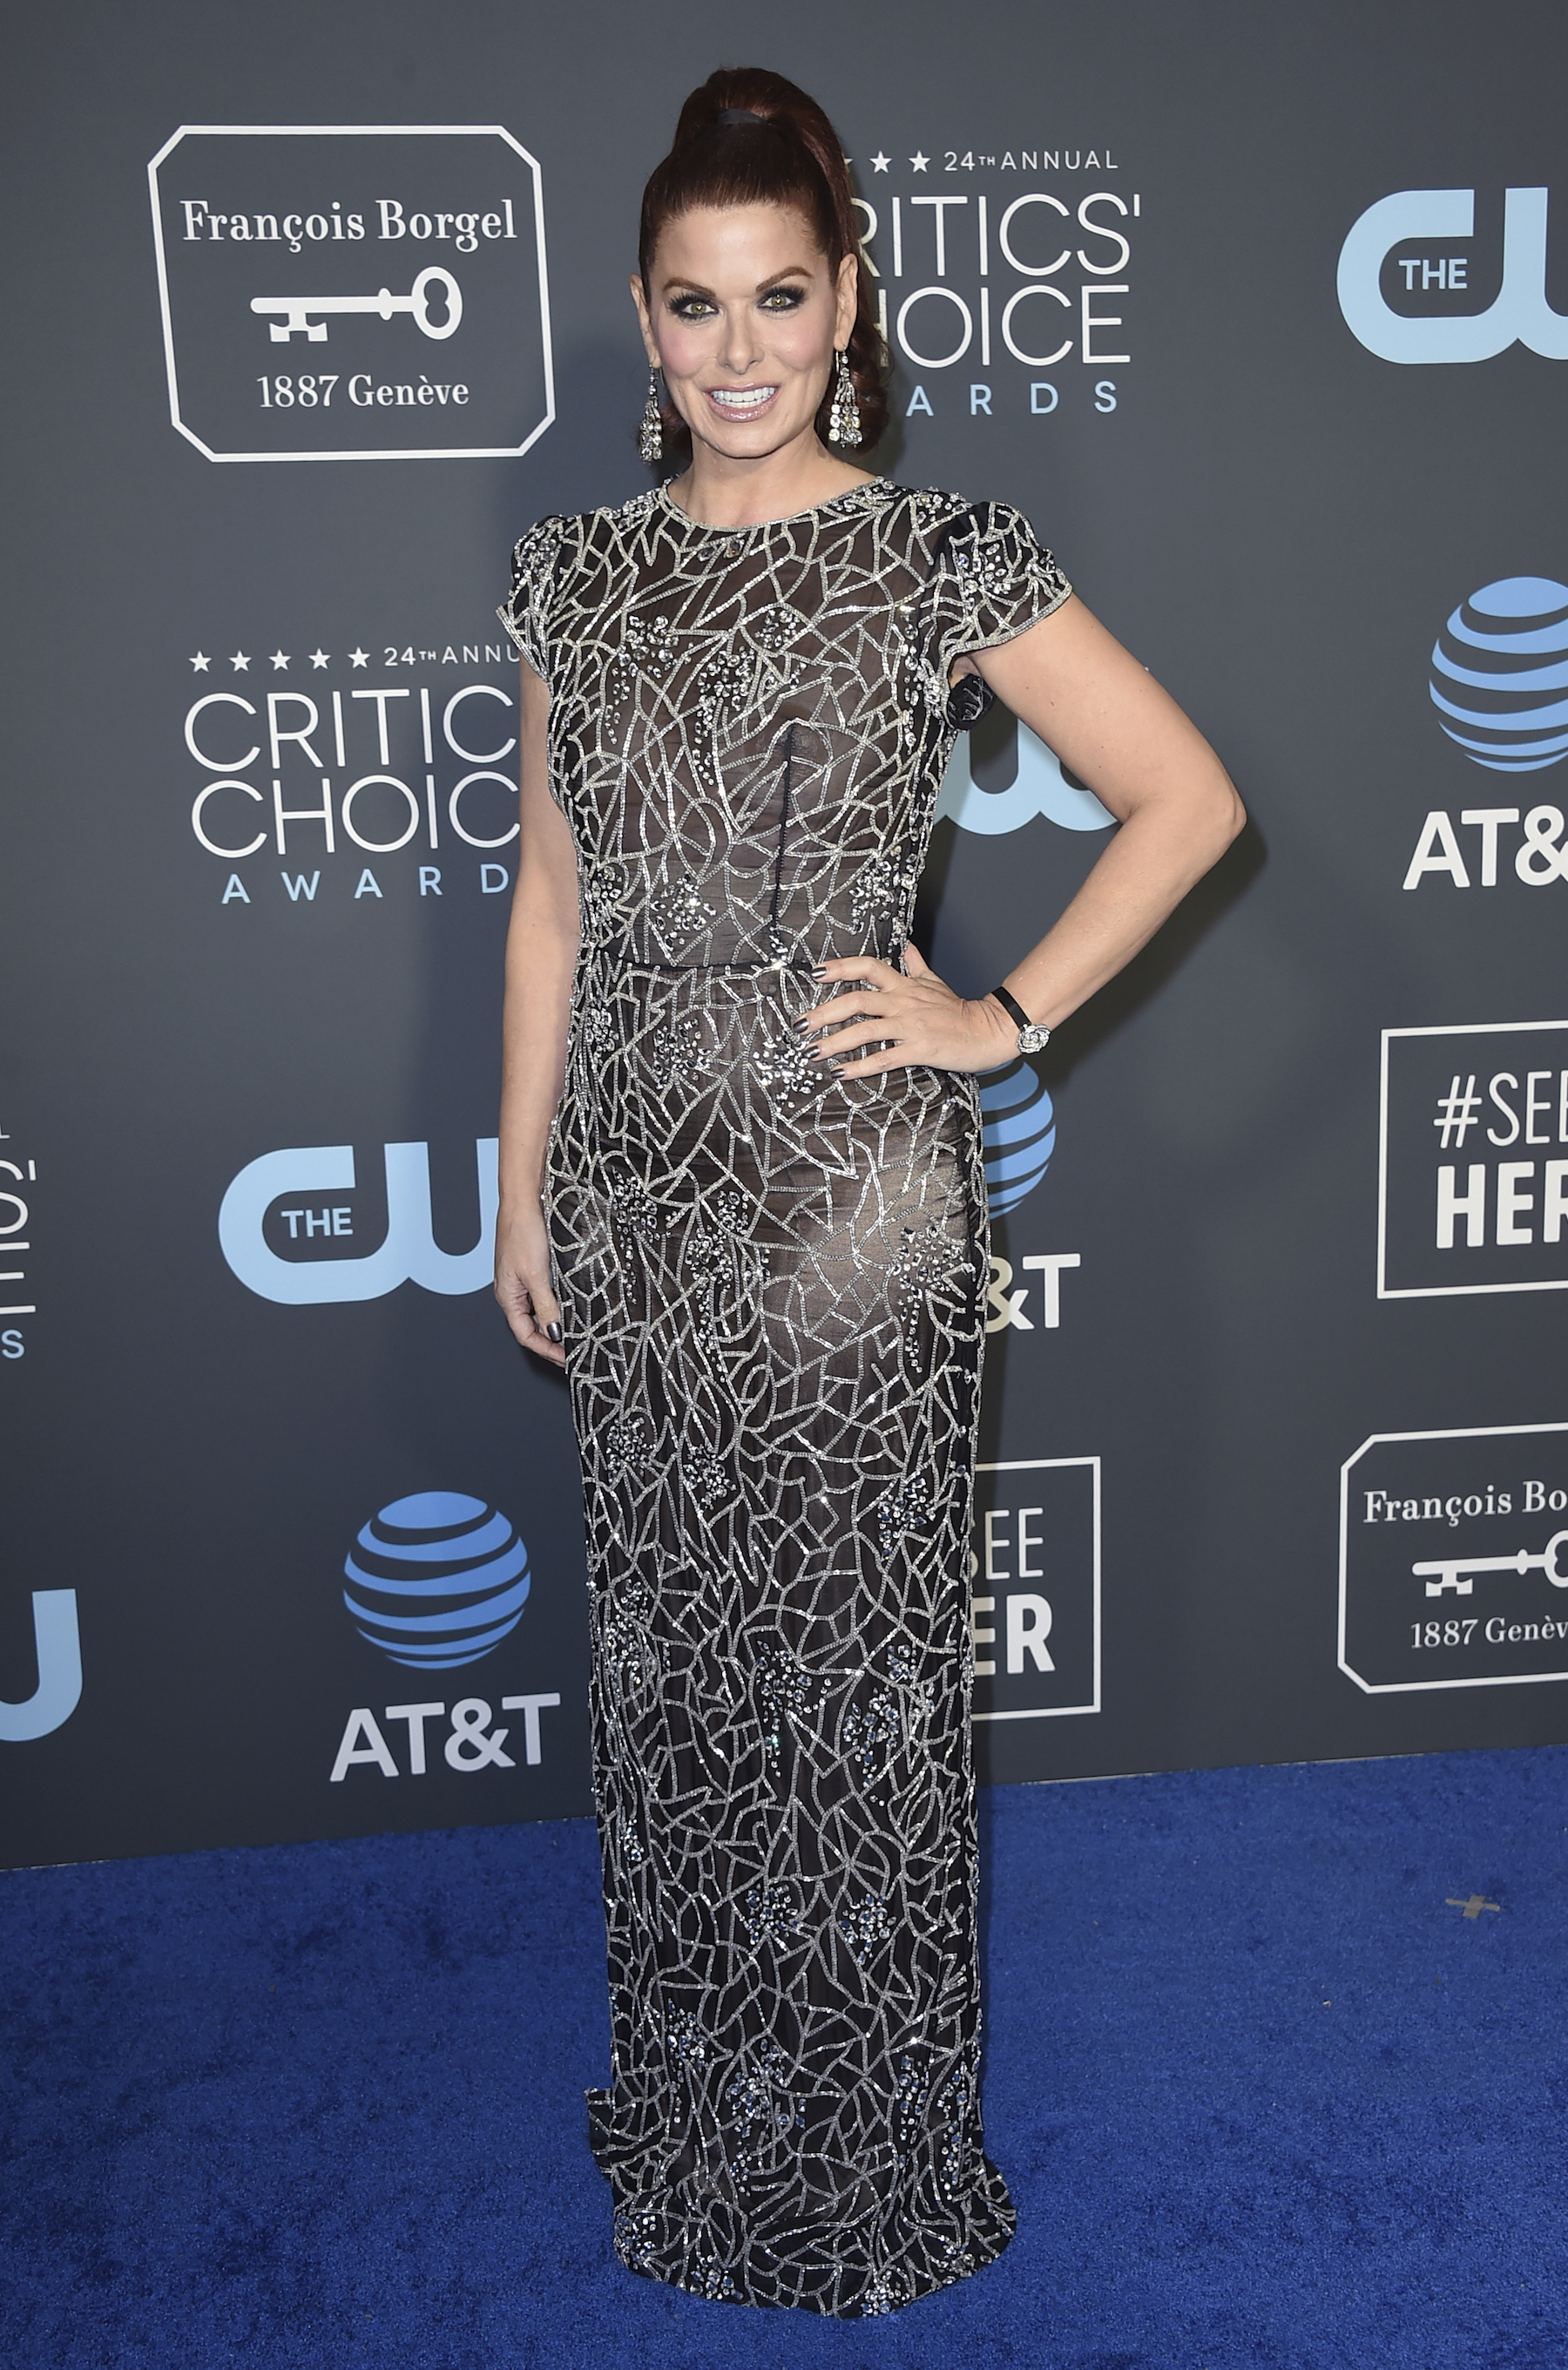 <div class='meta'><div class='origin-logo' data-origin='AP'></div><span class='caption-text' data-credit='Jordan Strauss/Invision/AP'>Debra Messing arrives at the 24th annual Critics' Choice Awards on Sunday, Jan. 13, 2019, at the Barker Hangar in Santa Monica, Calif.</span></div>